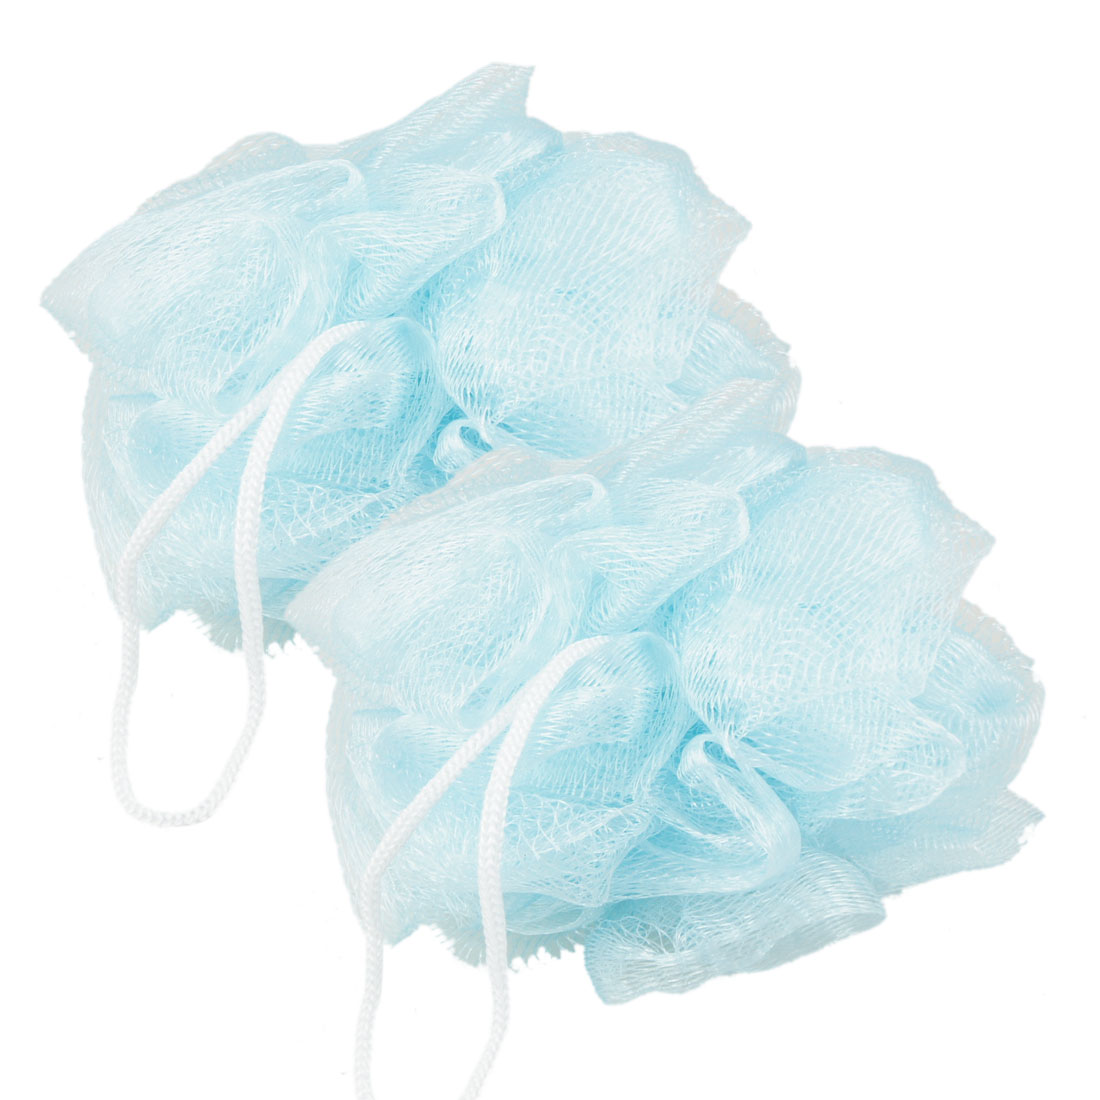 2 Pcs White Hoop Light Blue Soft Nylon Mesh Net Scrubber Pouf Bath Ball